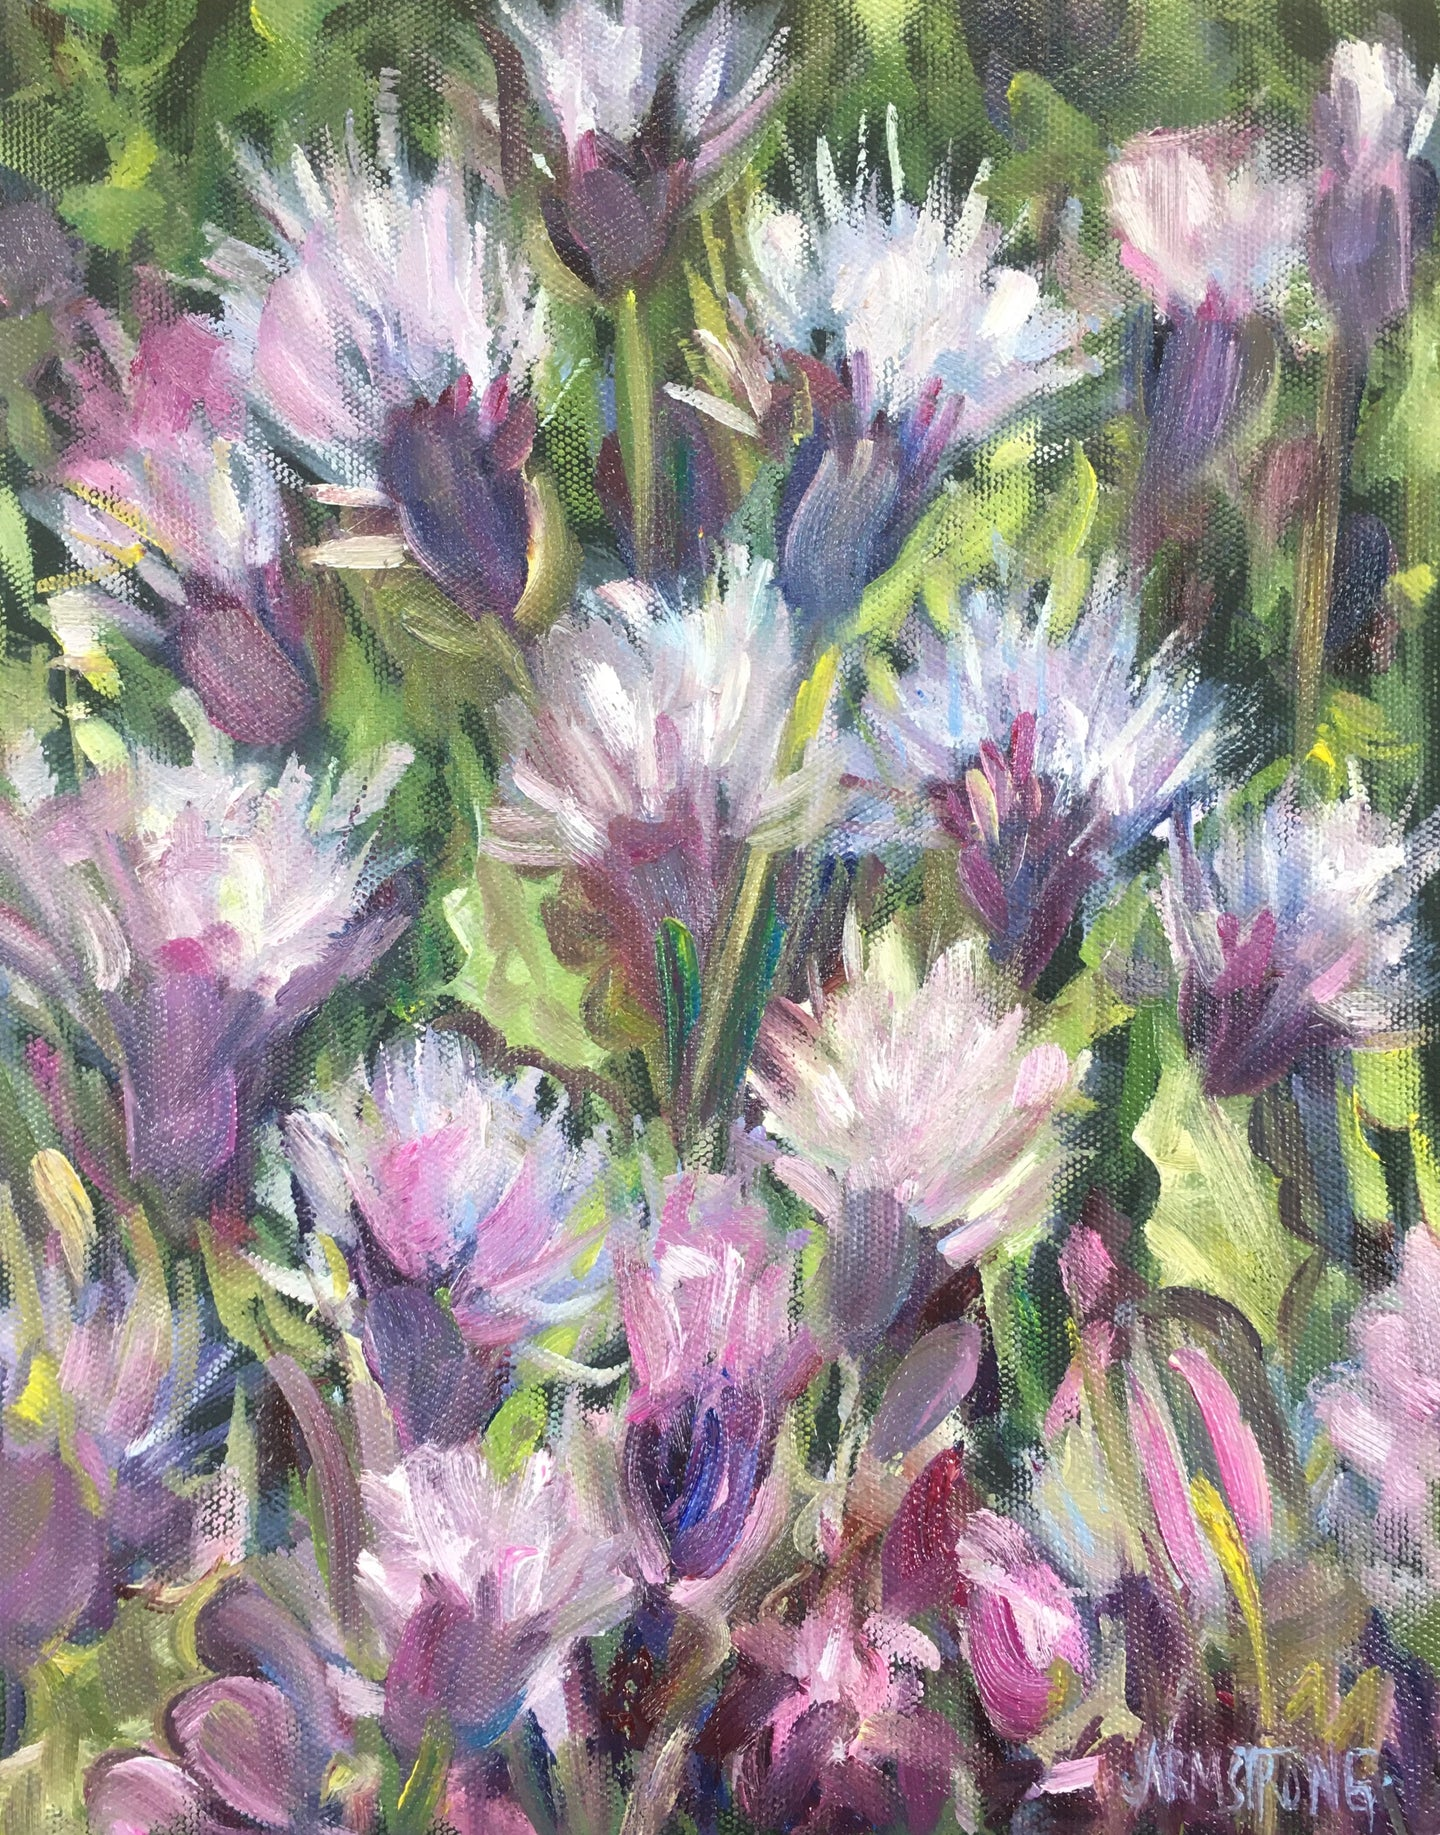 Thistles from Melrose, 10 x 8